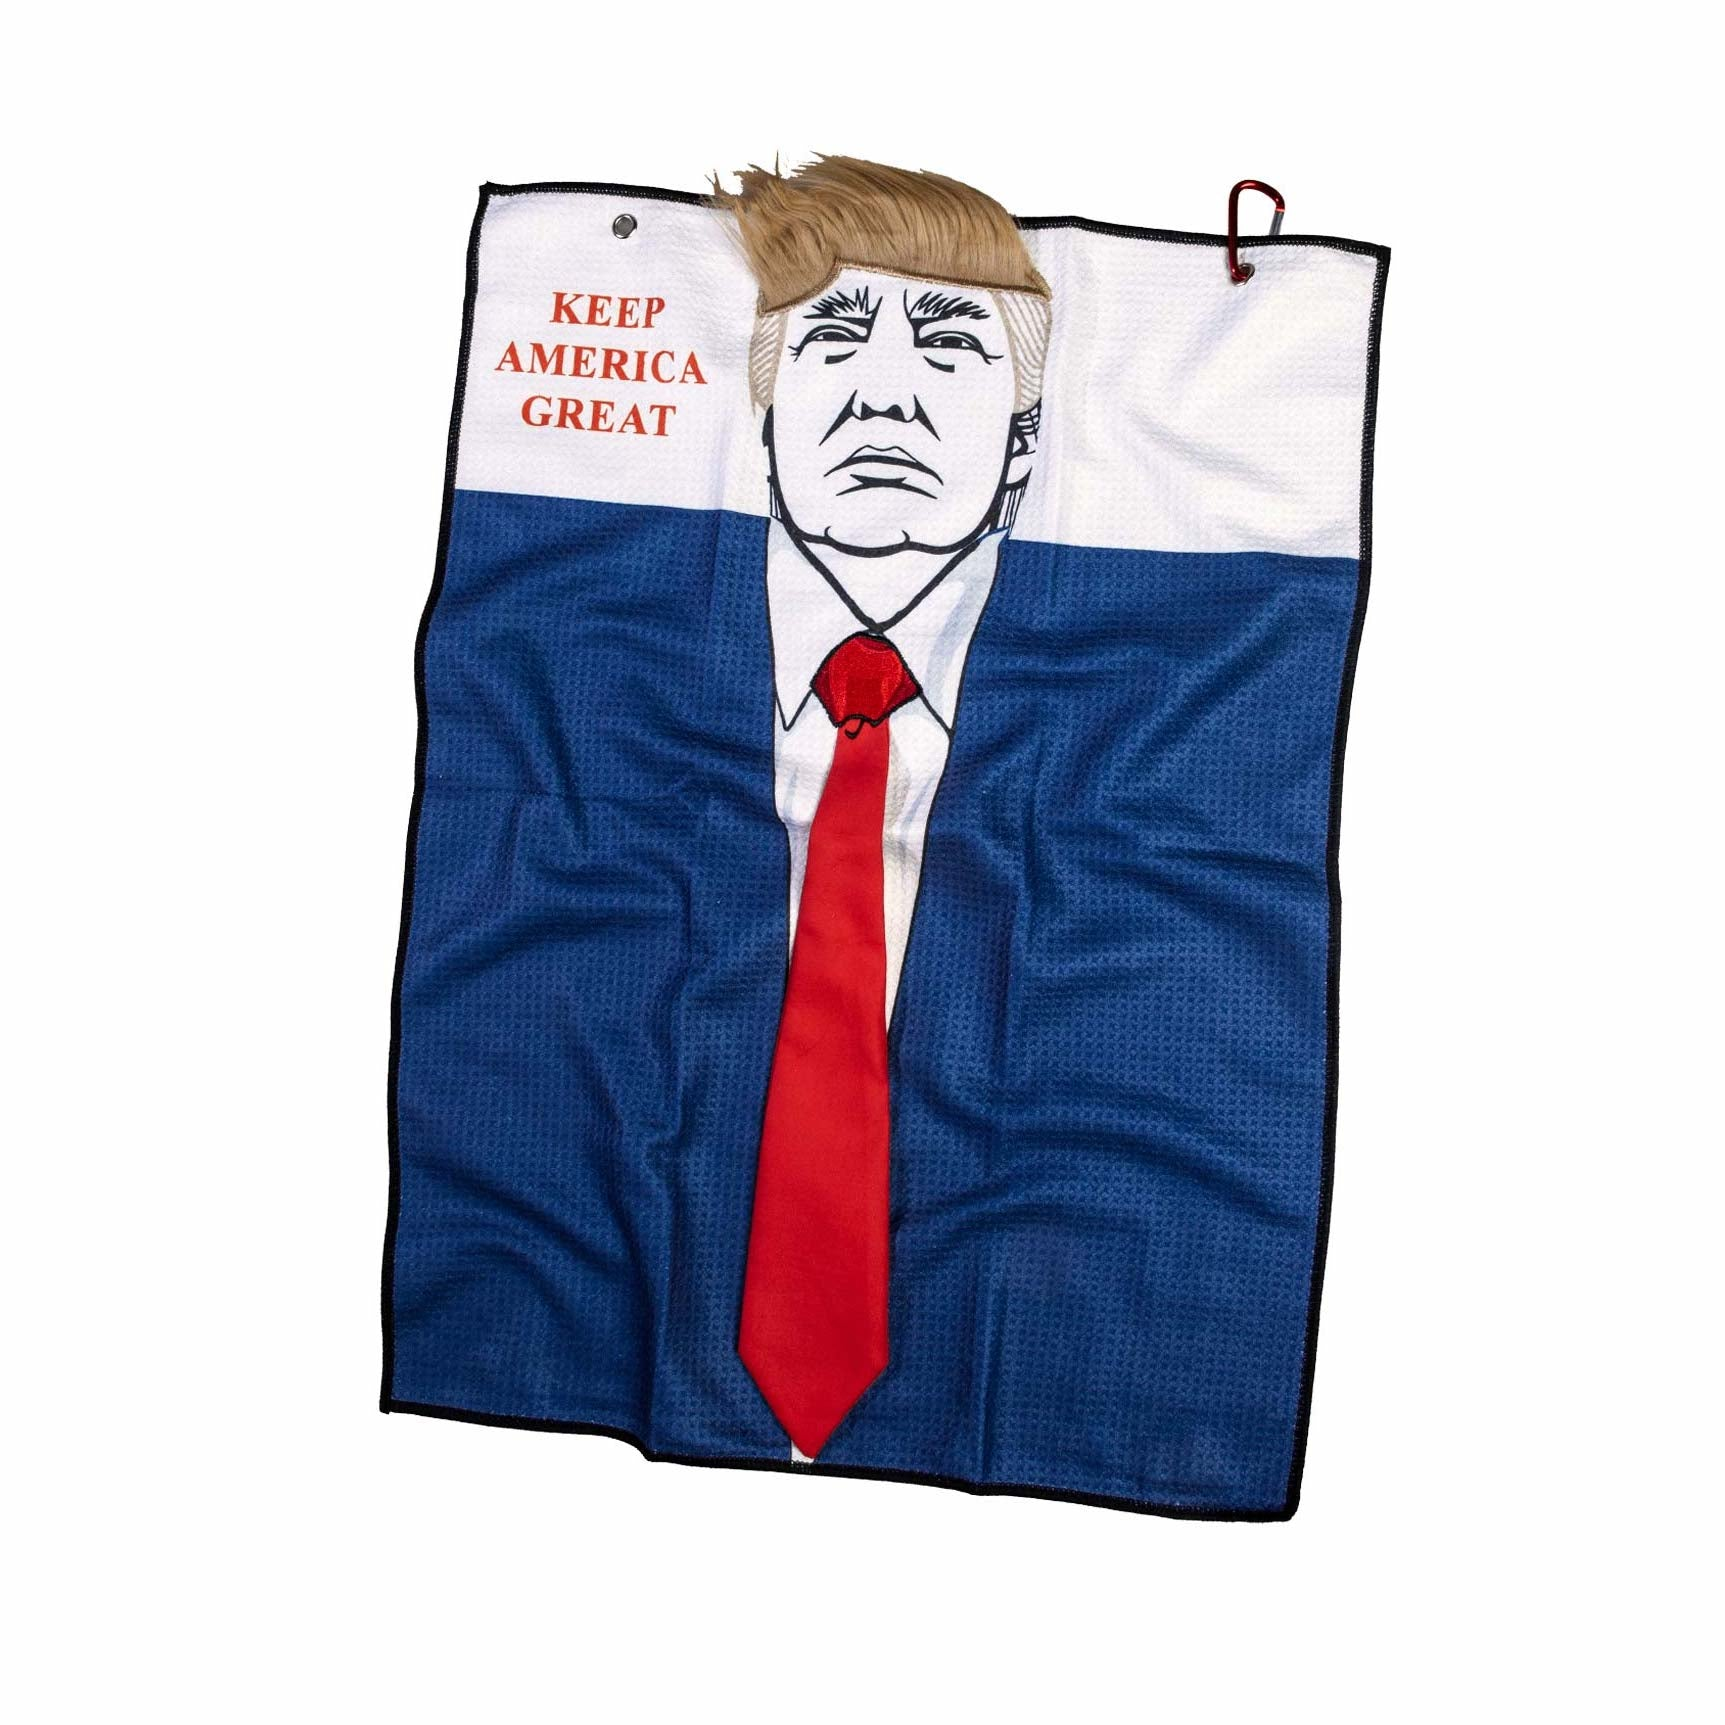 Keep America Great! - Towel